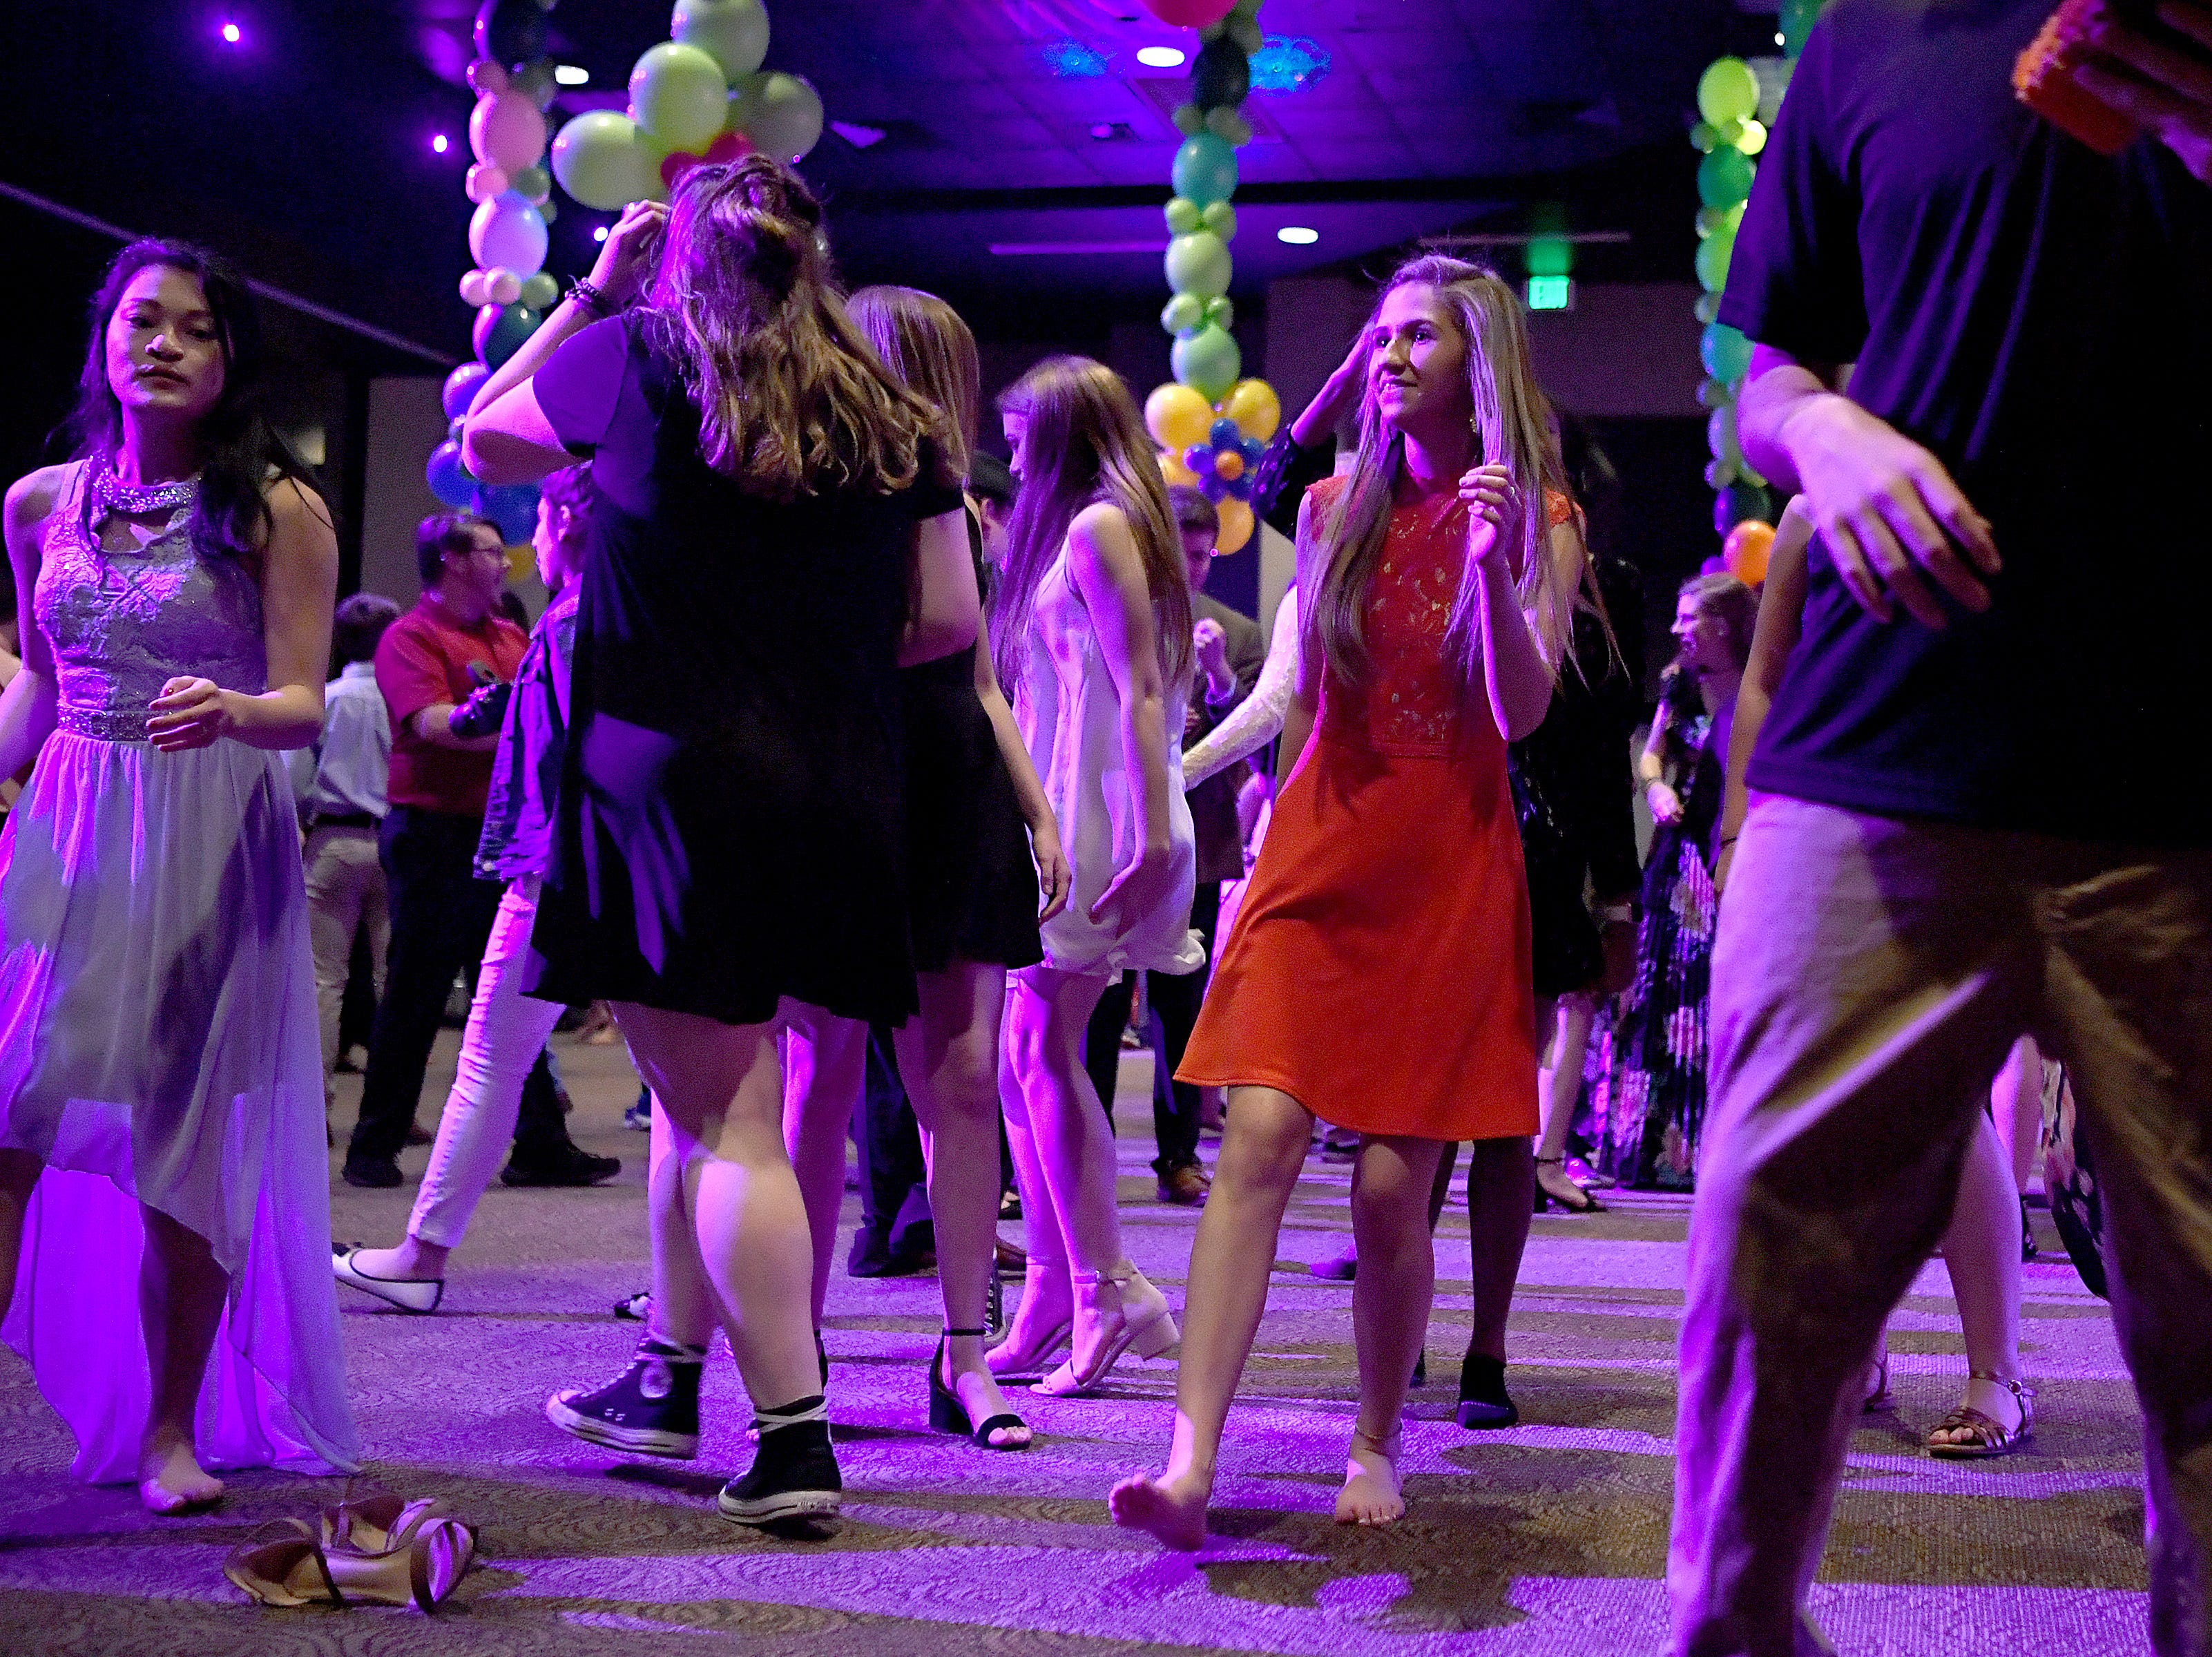 The Progressive Education Program held their prom at Biltmore Church on April 5, 2019. Many Roberson High School students escorted students from PEP to the prom themed Hawaiian Sunset.